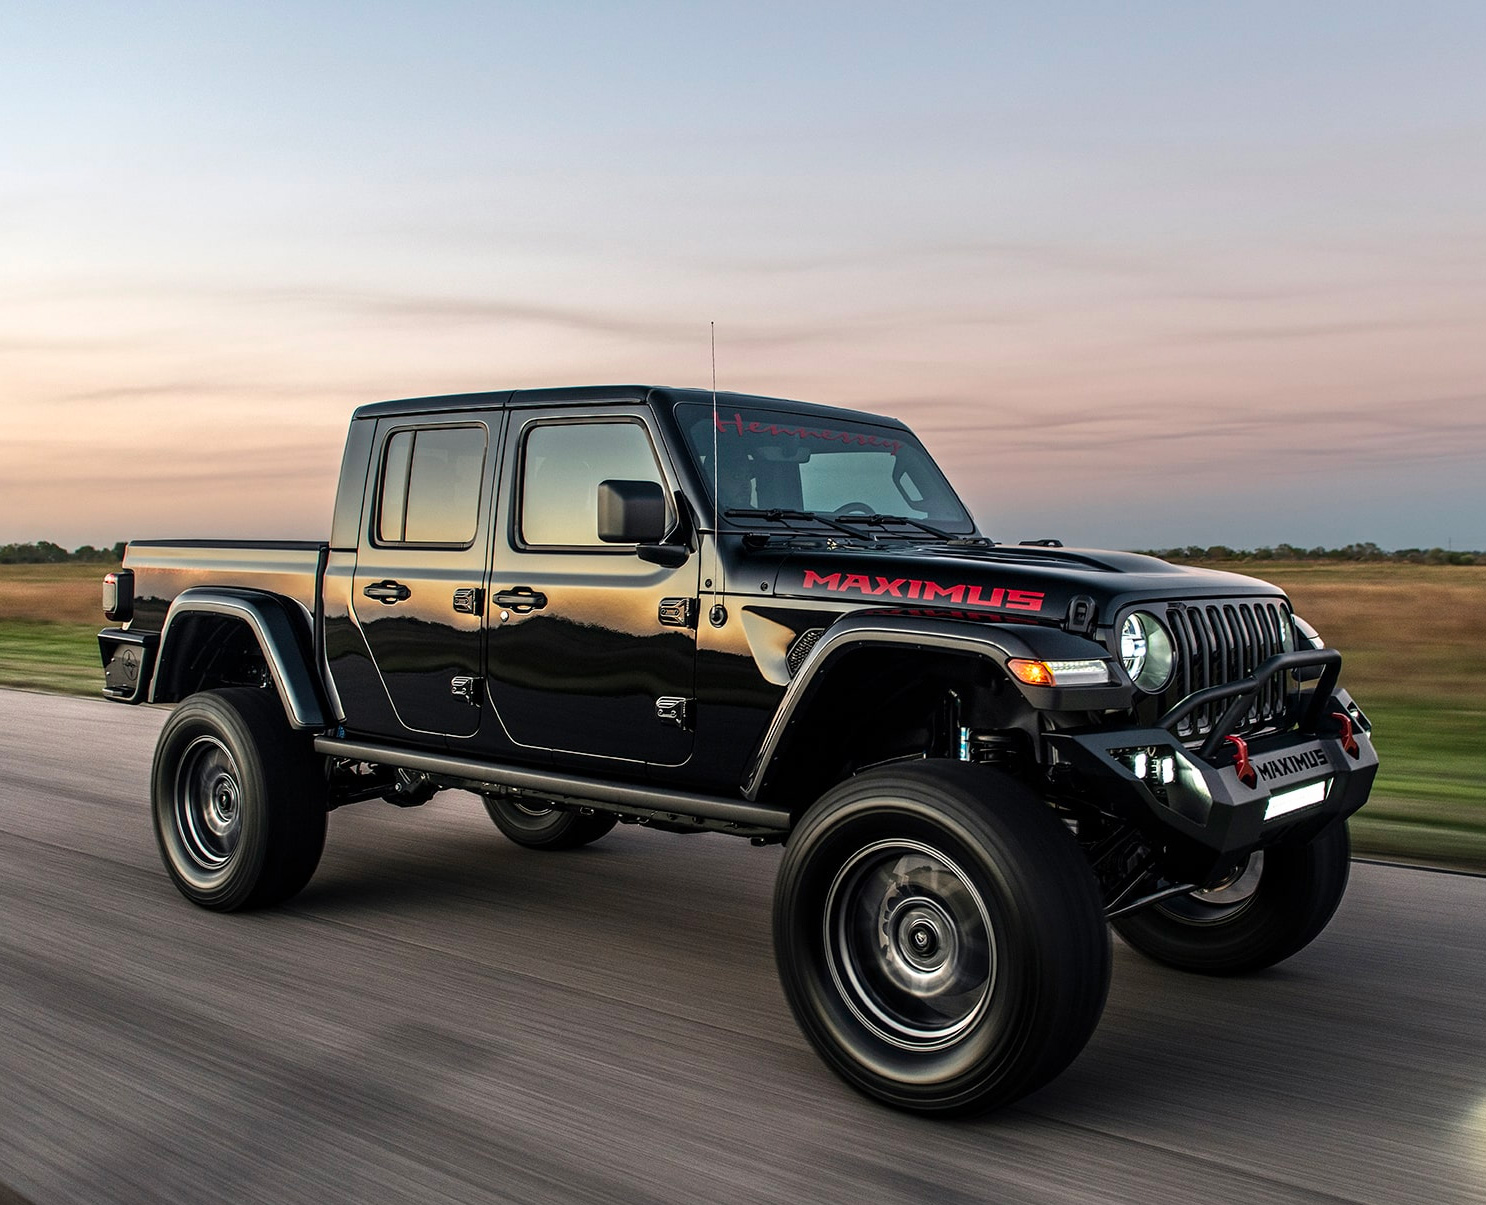 Hennessey's Latest Jeep is a 1000-Horse Gladiator at werd.com